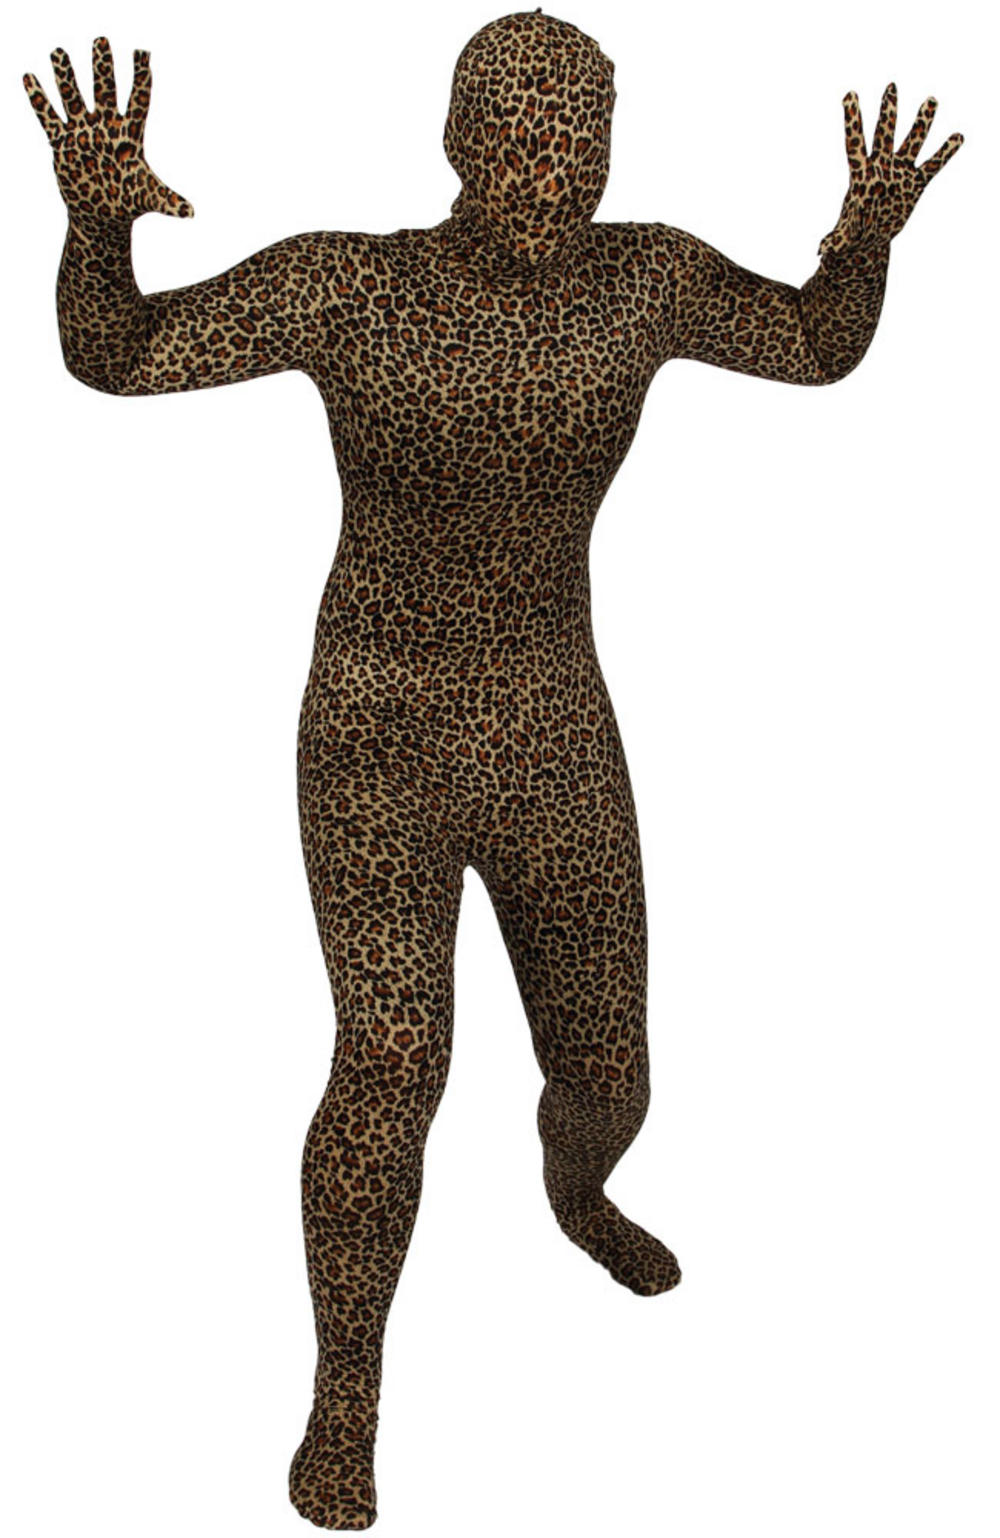 Leopard Bodysuit Skinz Fancy Dress Skin Suit Halloween Stag Costume